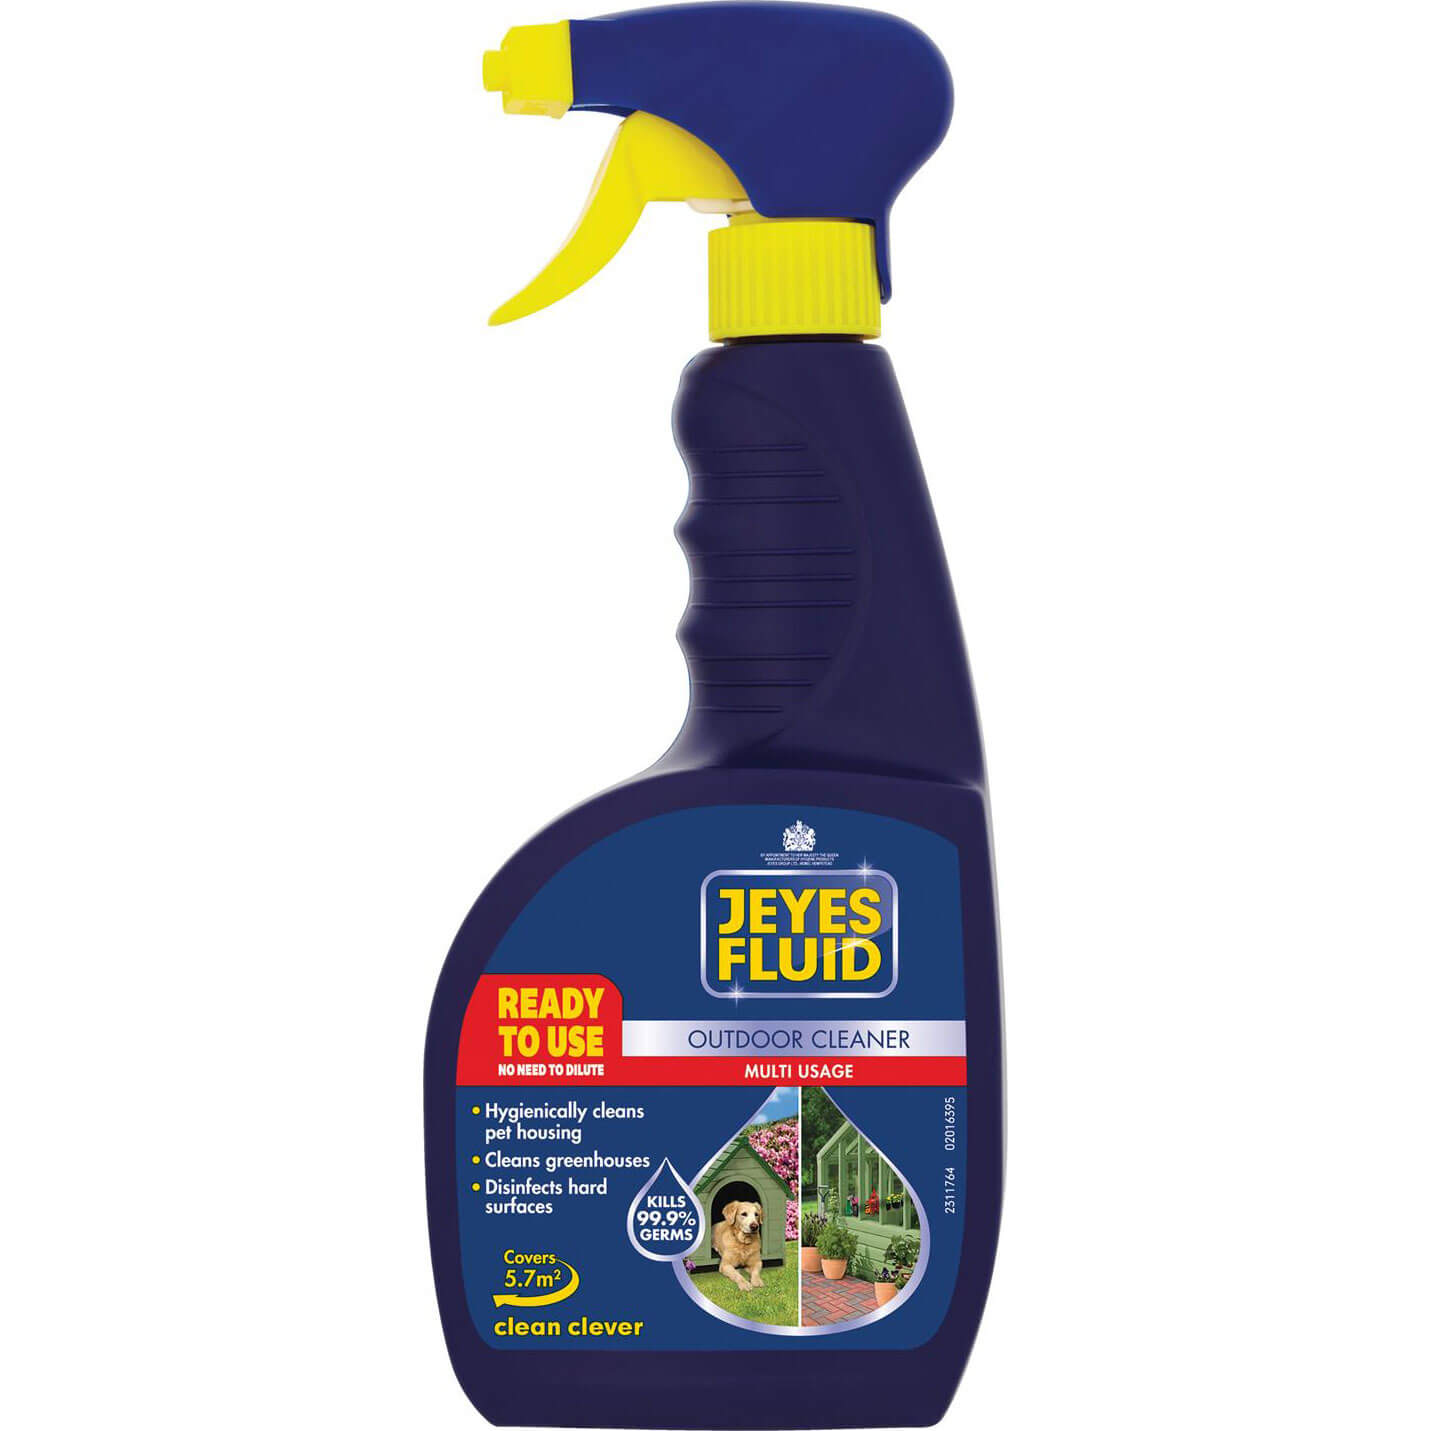 Image of Jeyes Multi Purpose Outdoor Cleaner Disinfectant Fluid 750ml